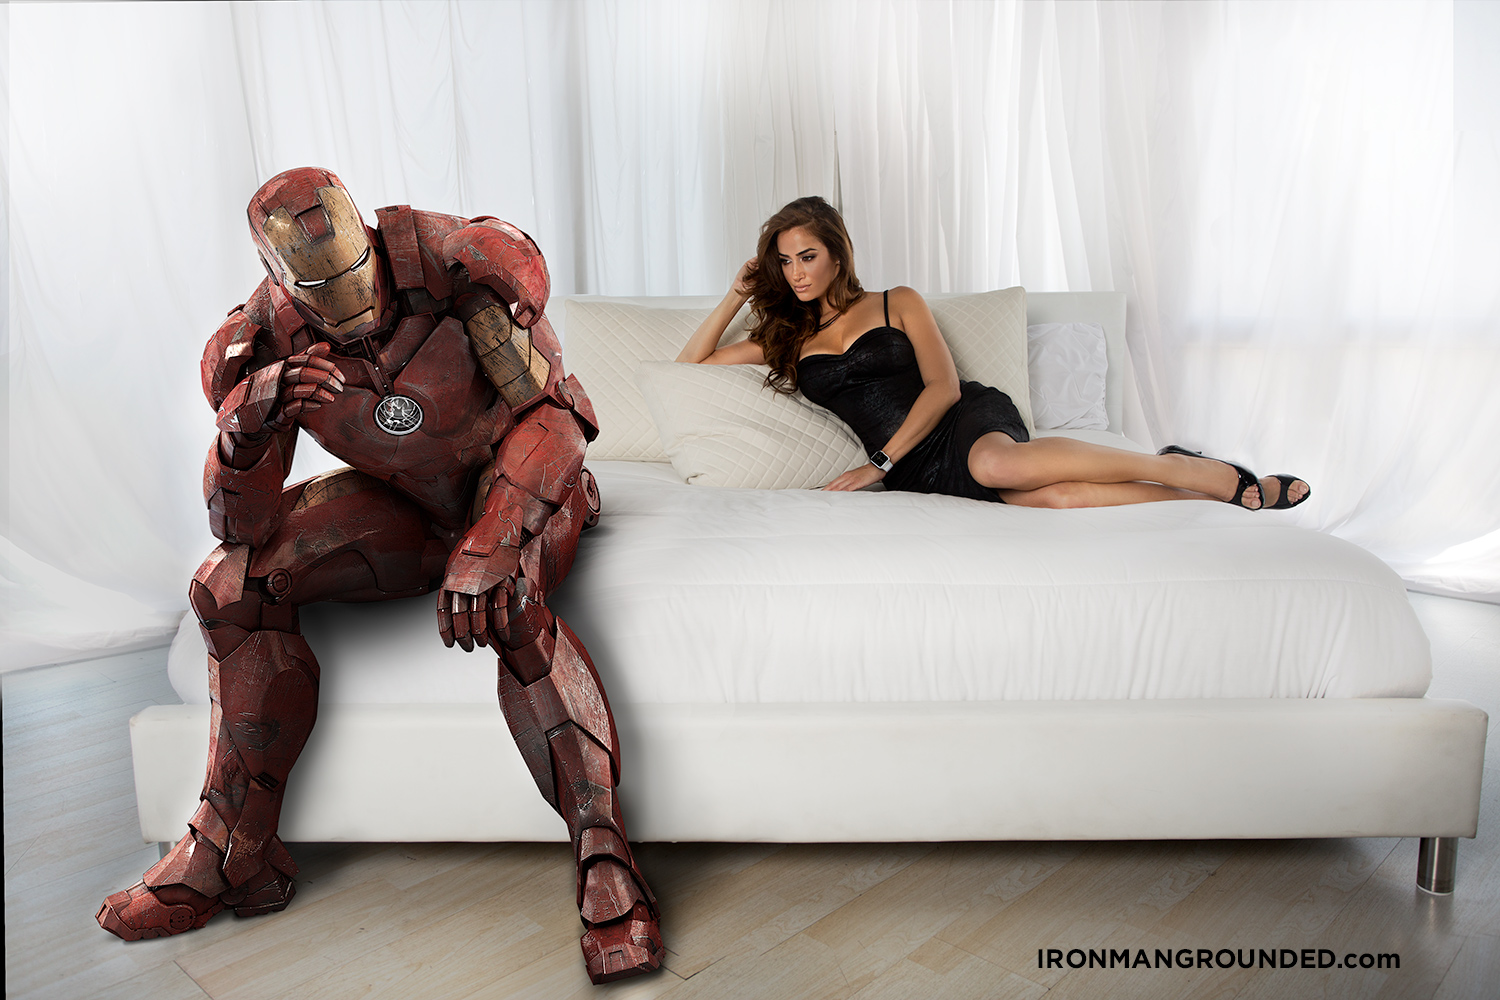 iron_man_grounded_in_bed_donna_feldman